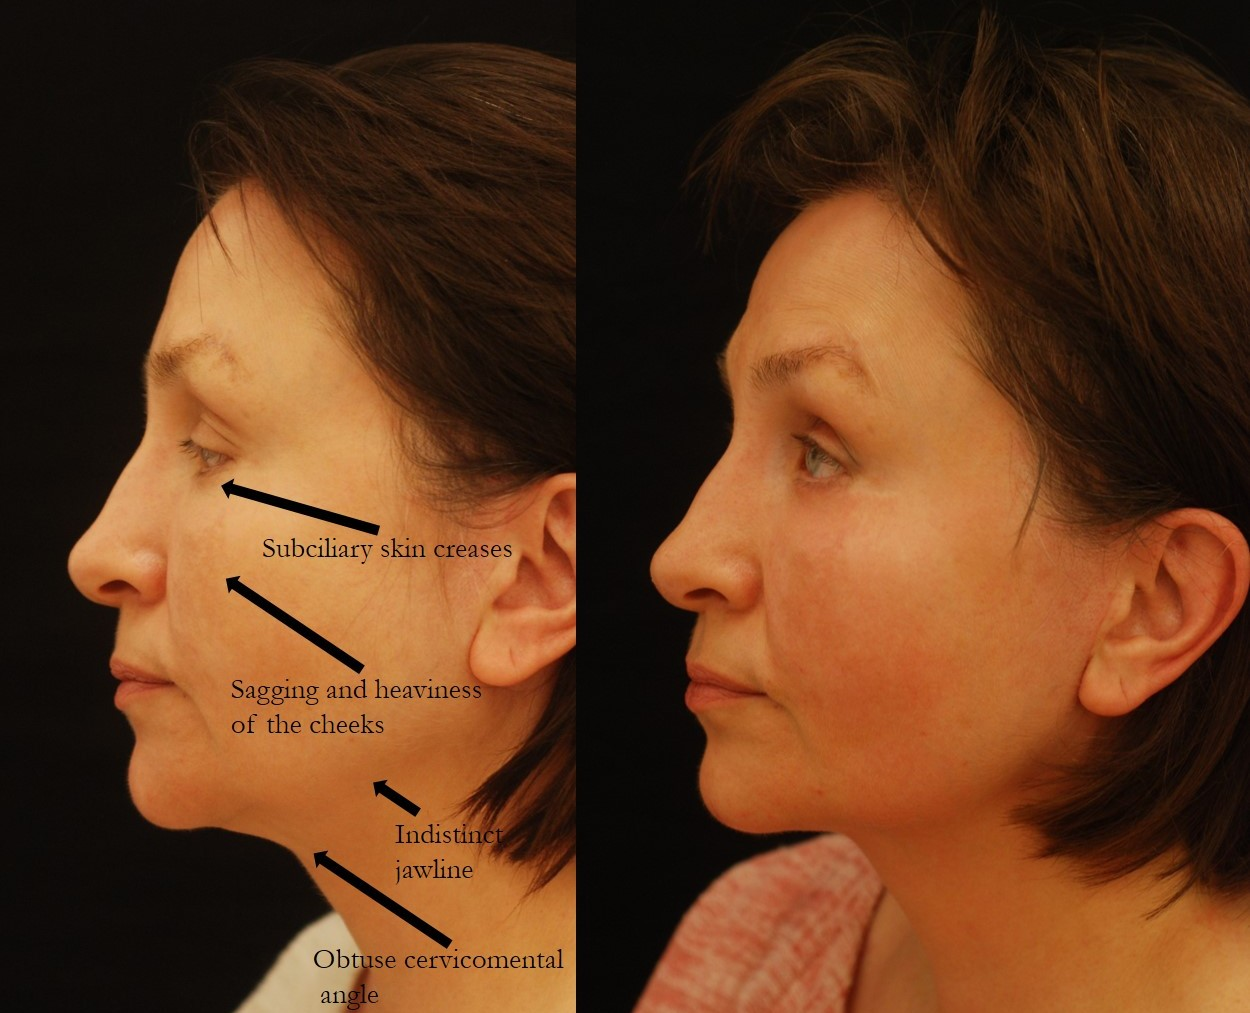 Actual patient of Dr. Devgan, before and after revision facelift, necklift, and lower eyelid blepharoplasty. This result is shown 6 weeks after surgery.